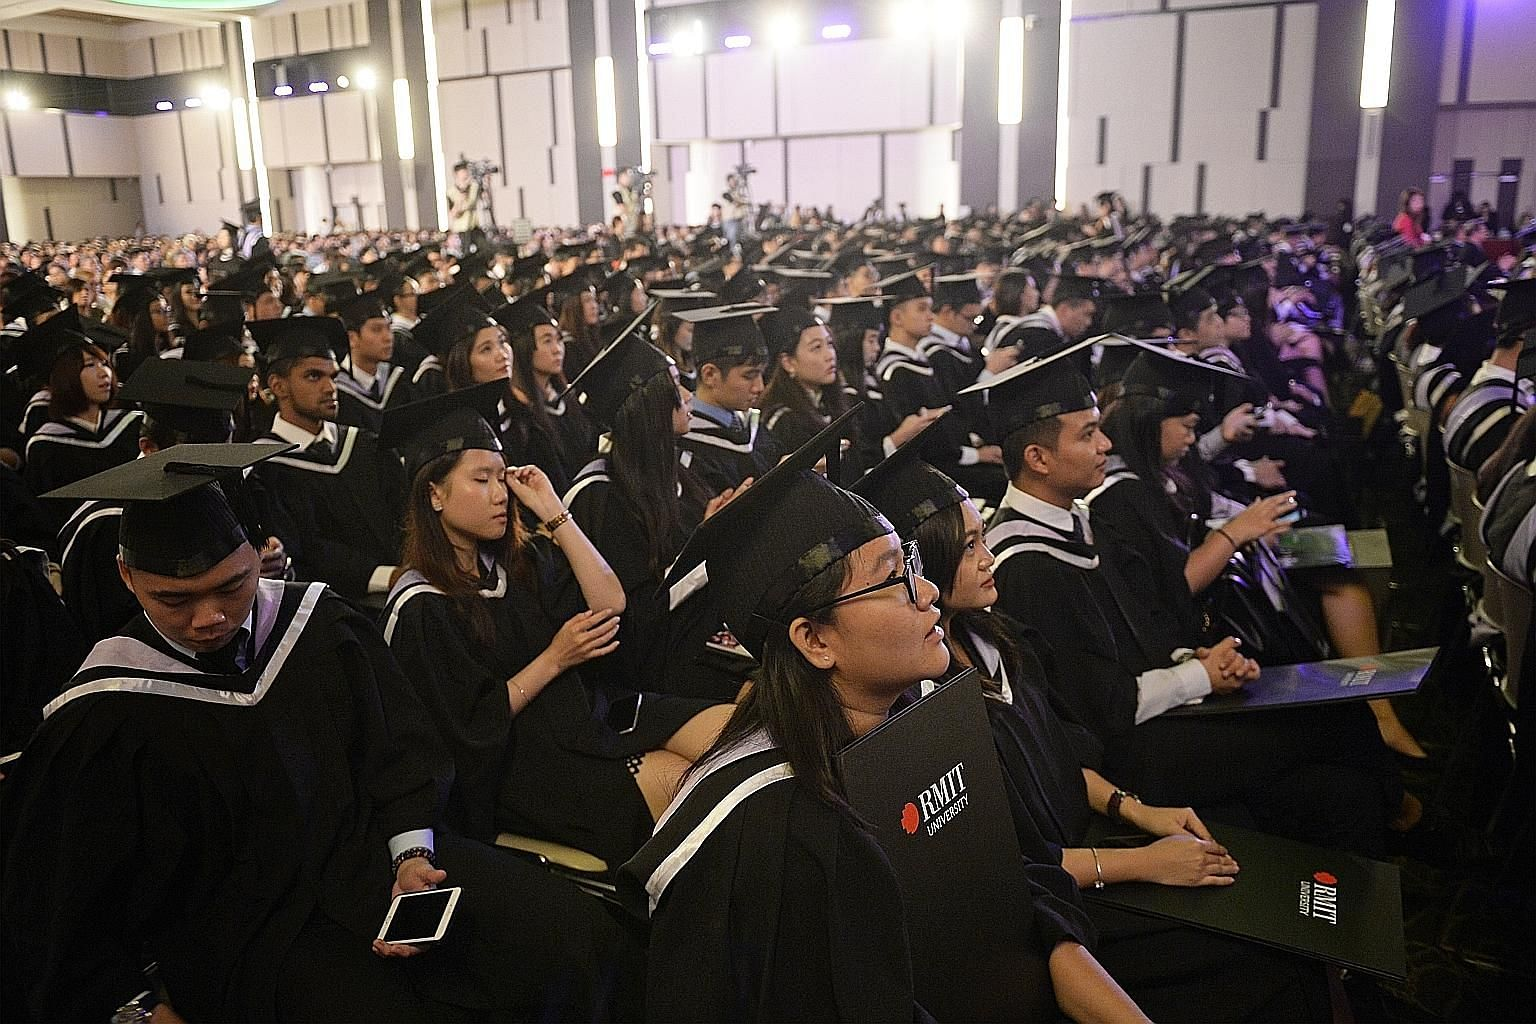 Graduates at the SIM-RMIT University degree conferment and awards ceremony for Bachelor of Business (Management) held at the Singapore Institute of Management last Thursday.